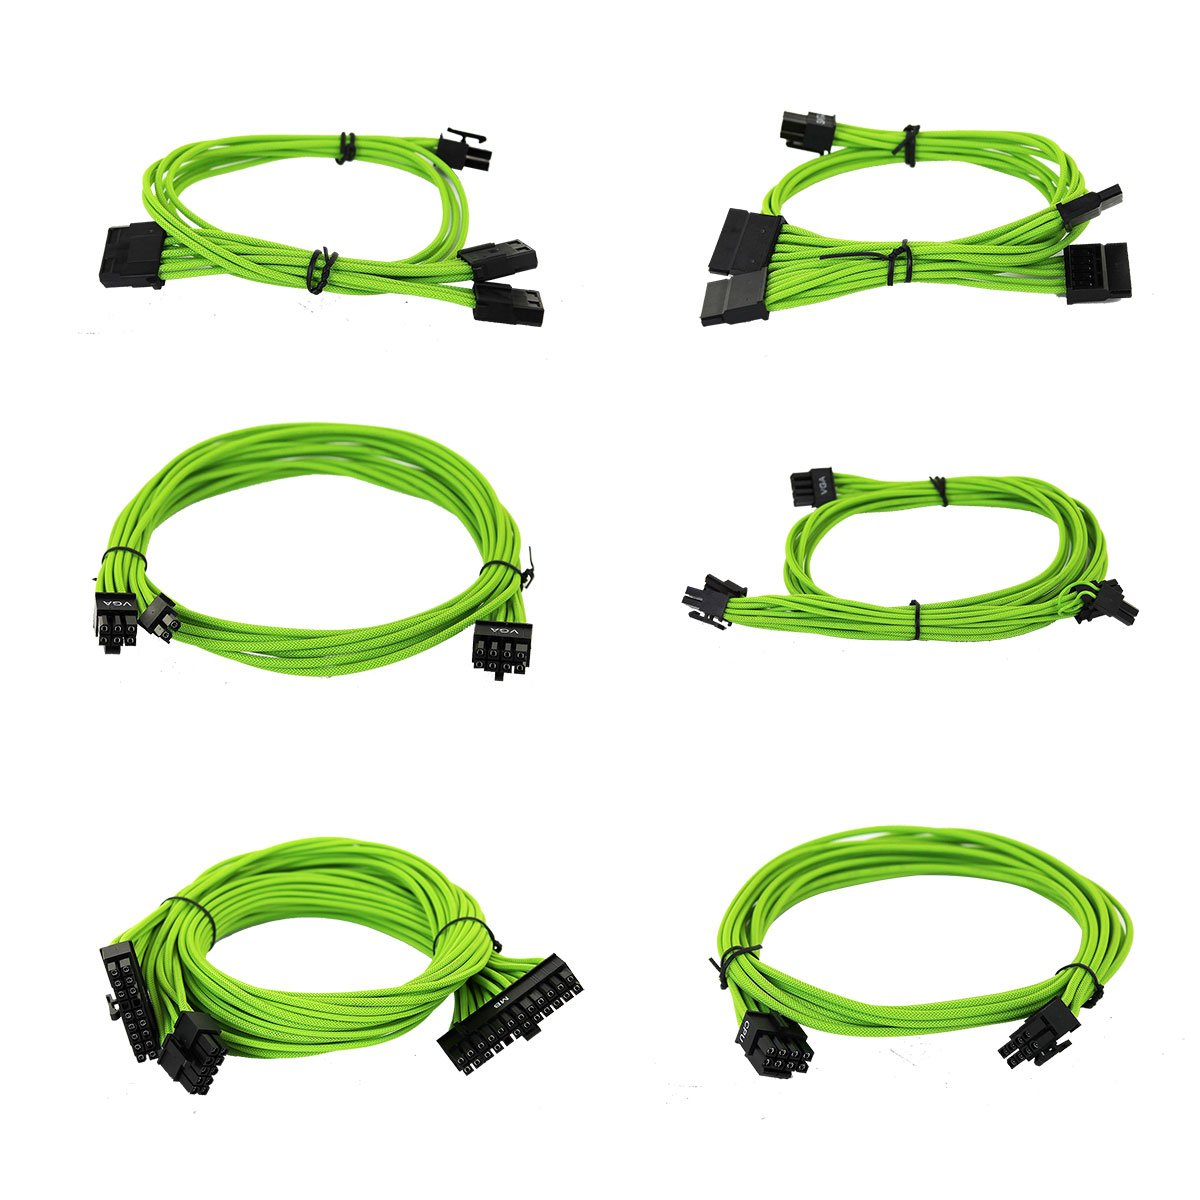 100-G2-06GG-B9 Individually Sleeved EVGA Green 550-650 G2//P2//T2 Power Supply Cable Set